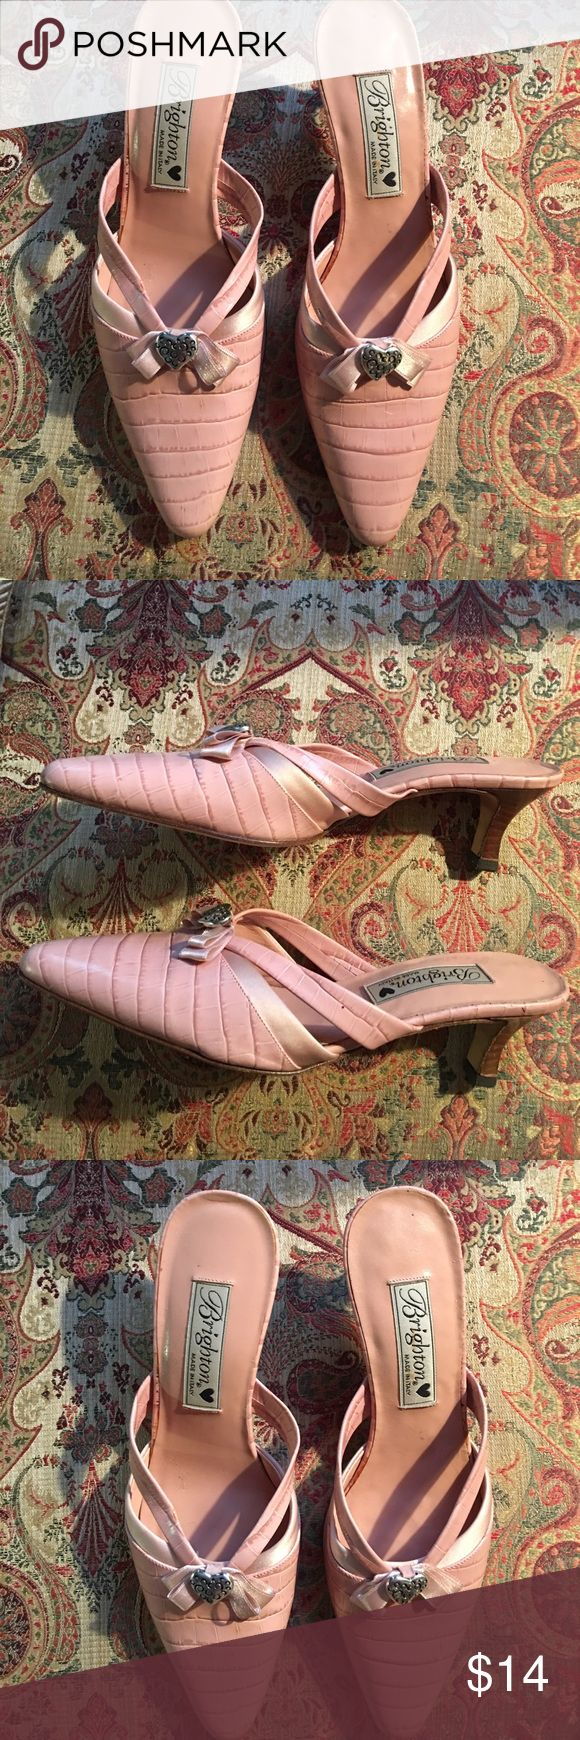 Authentic Brighton Shoes Pink leather,open back shoes. Very good condition,hardly worn. Brighton silver heart with pink ribbon Brighton Shoes Heels